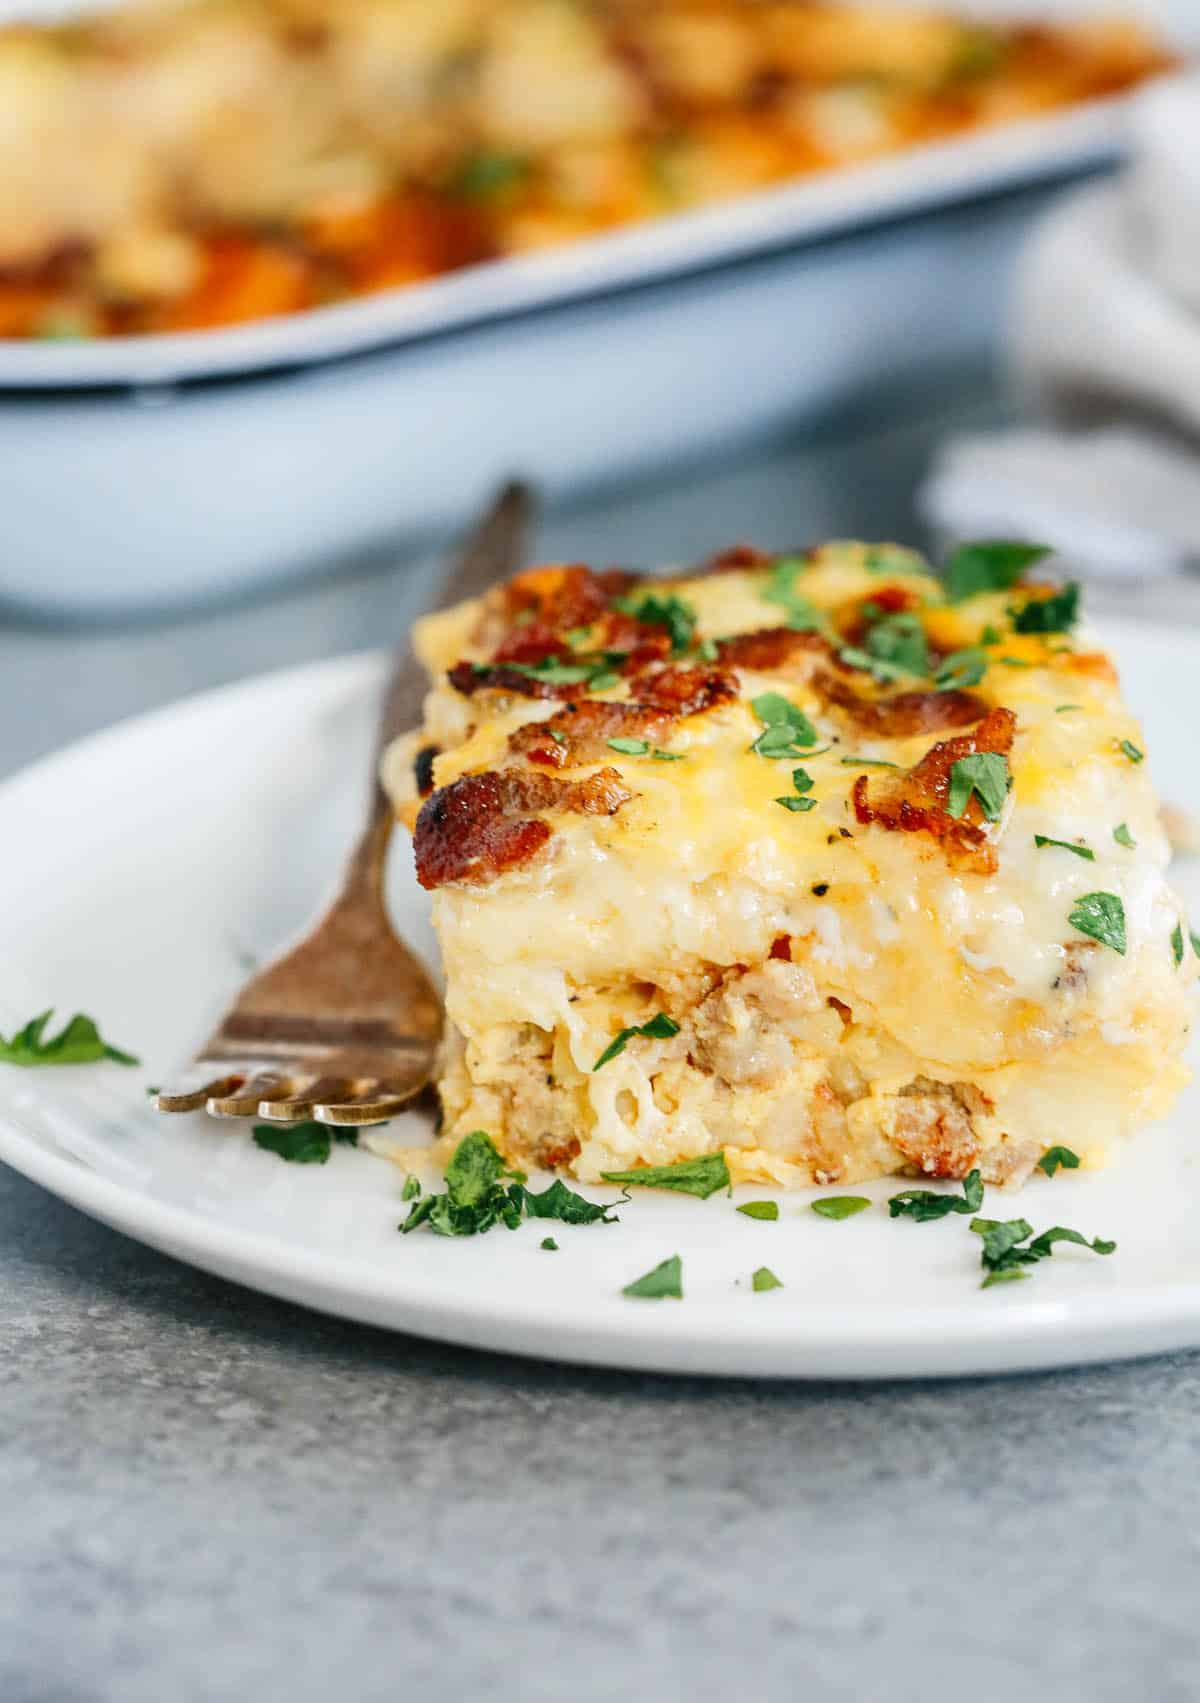 a slice of Sausage and Potato Breakfast Casserole on a plate with a fork